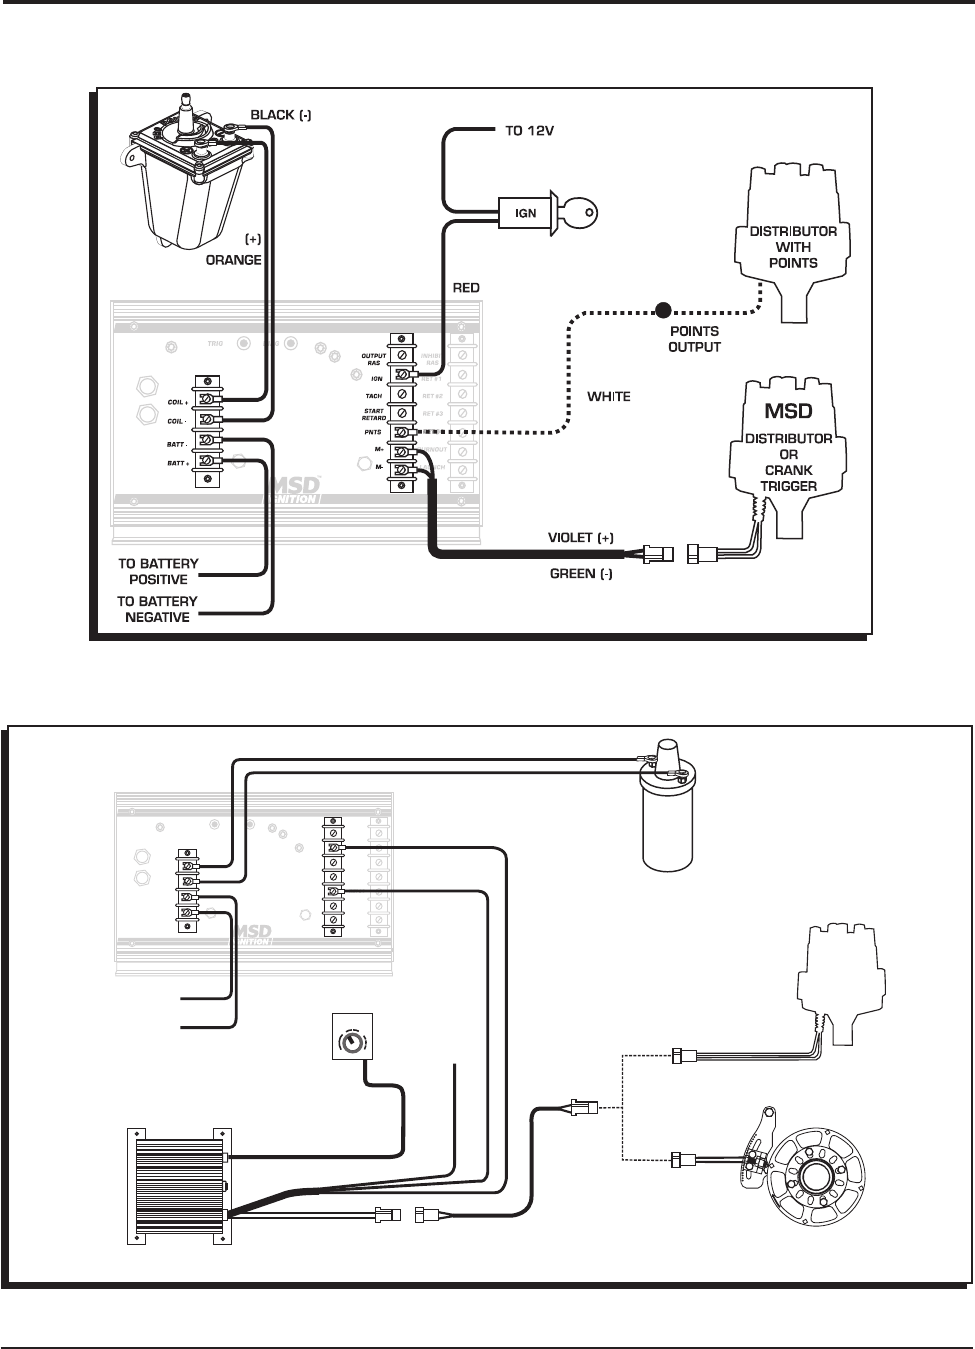 Msd 7230 Wiring Diagram Diagrams Schematic Ignition Kit Installation Instructions 121 Rh Usermanual Wiki 7al 3 Manual